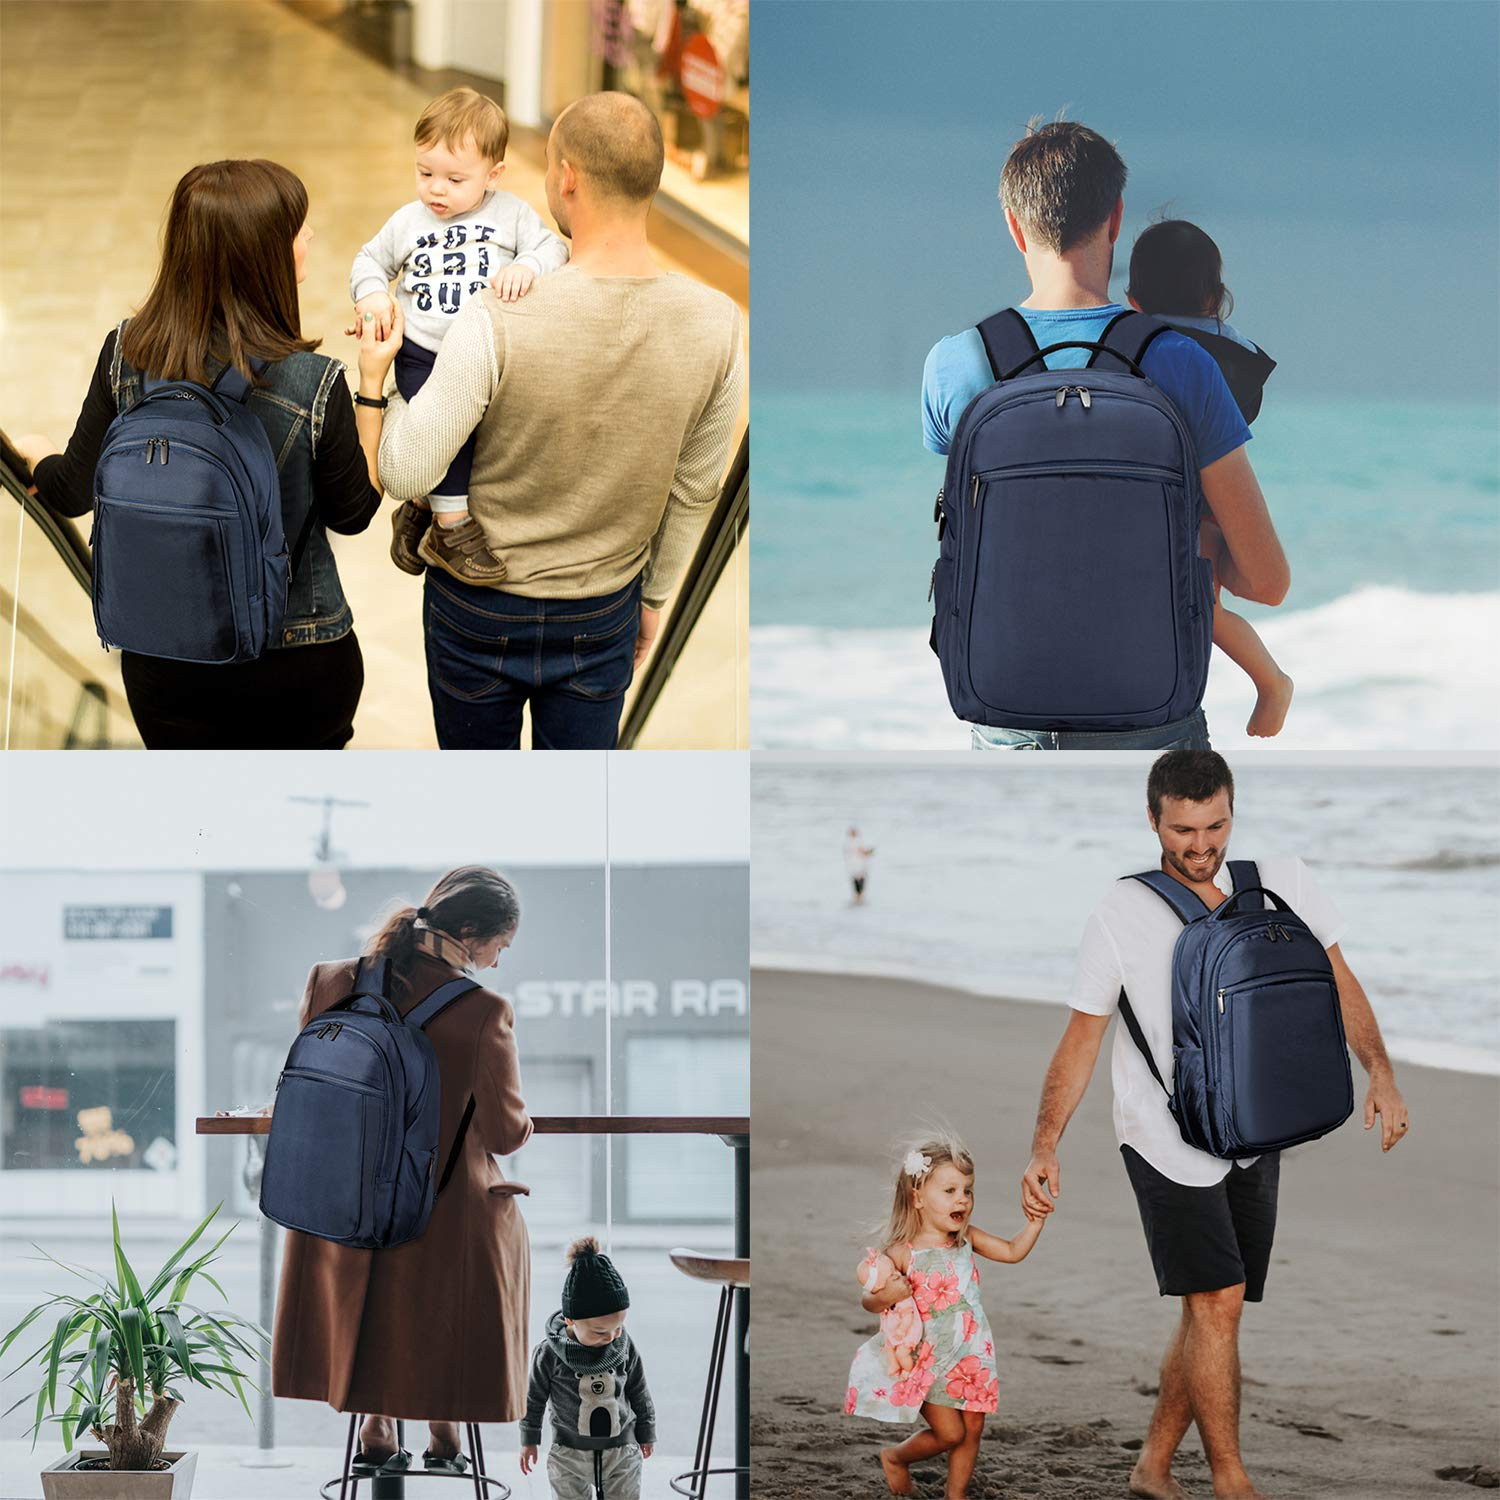 Wemk Laptop Backpack, Business Backpack, Travel Computer Backpack for Women & Men, Water Resistant College School Computer Bag with a Little Bag, Fits 14.1 Inch Laptop& Notebook (Blue) by Wemk (Image #7)